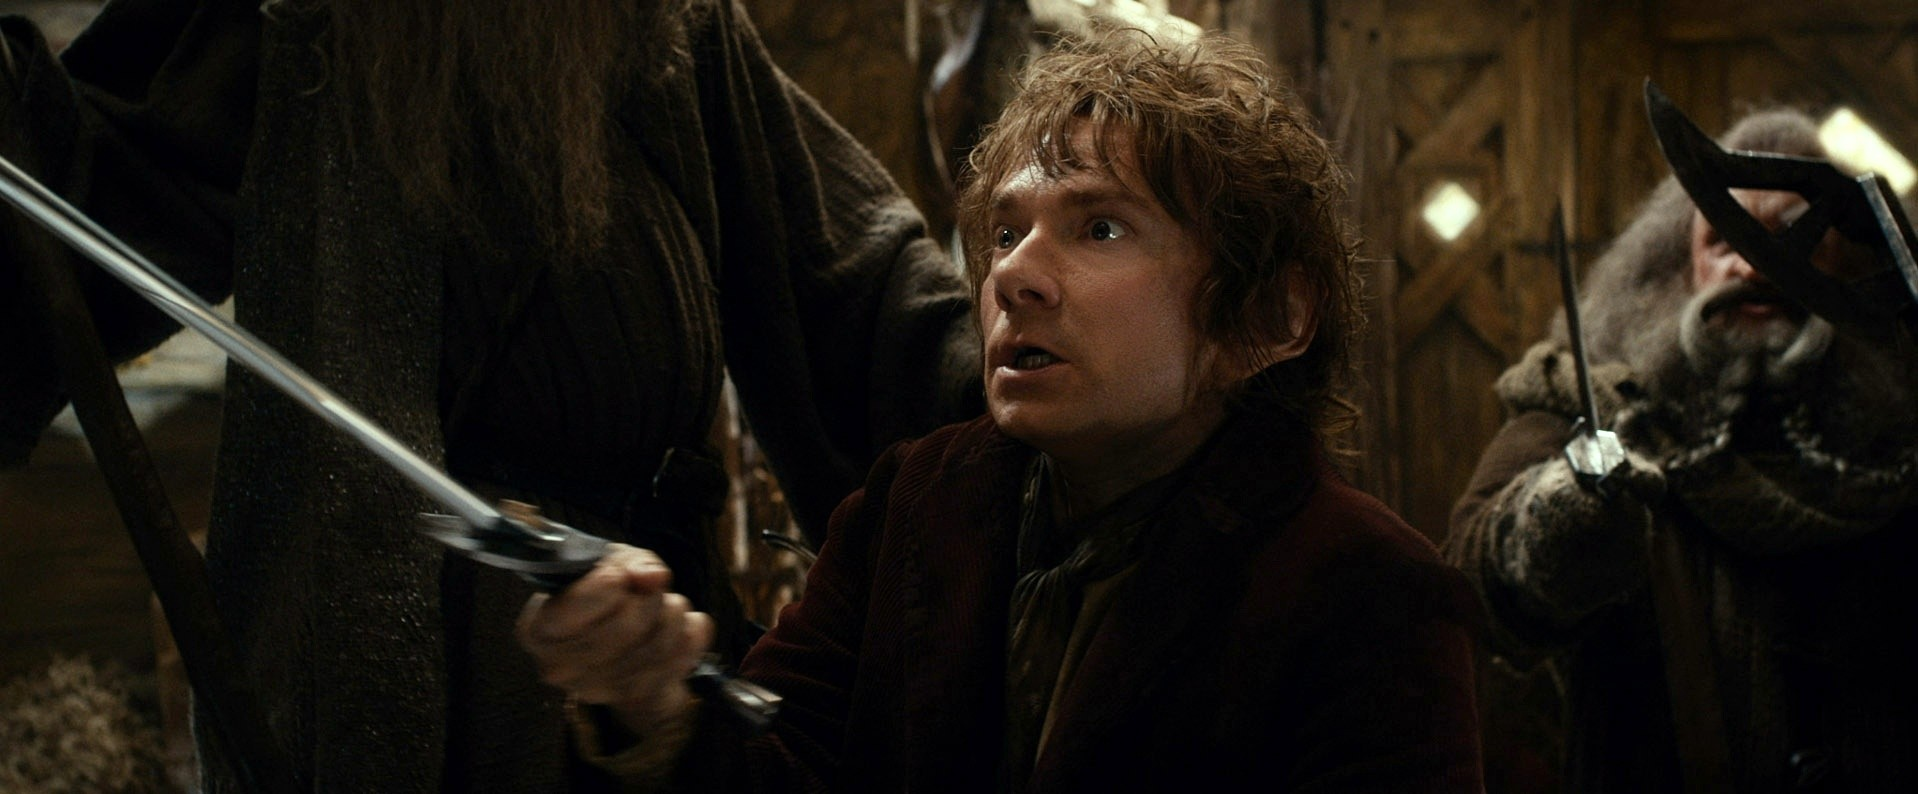 Martin Freeman stars as Bilbo Baggins in Warner Bros. Pictures' The Hobbit: The Desolation of Smaug (2013)